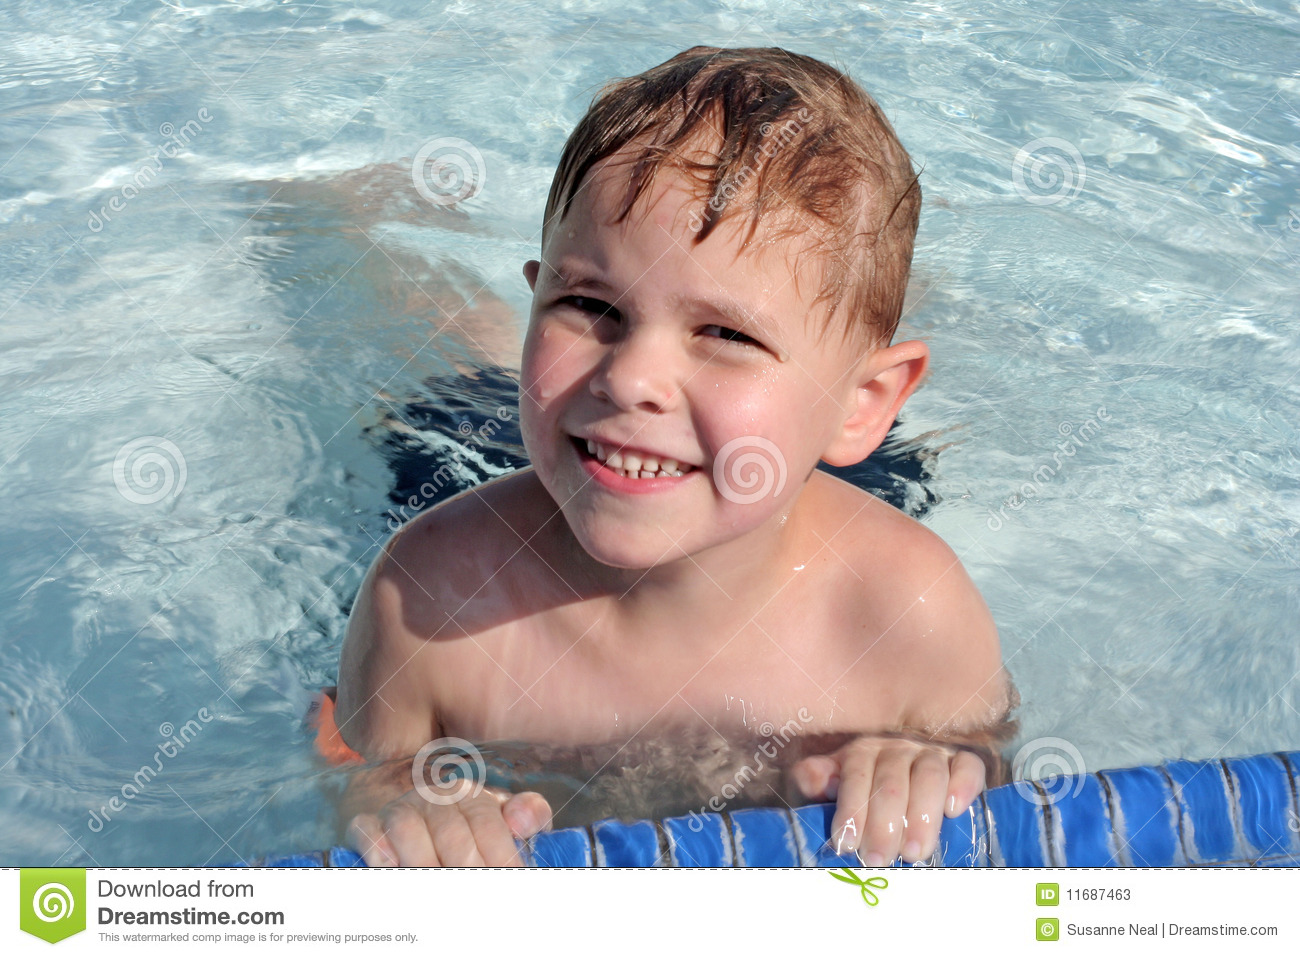 cute 6-year-old boy in swimming pool looking up at camera and